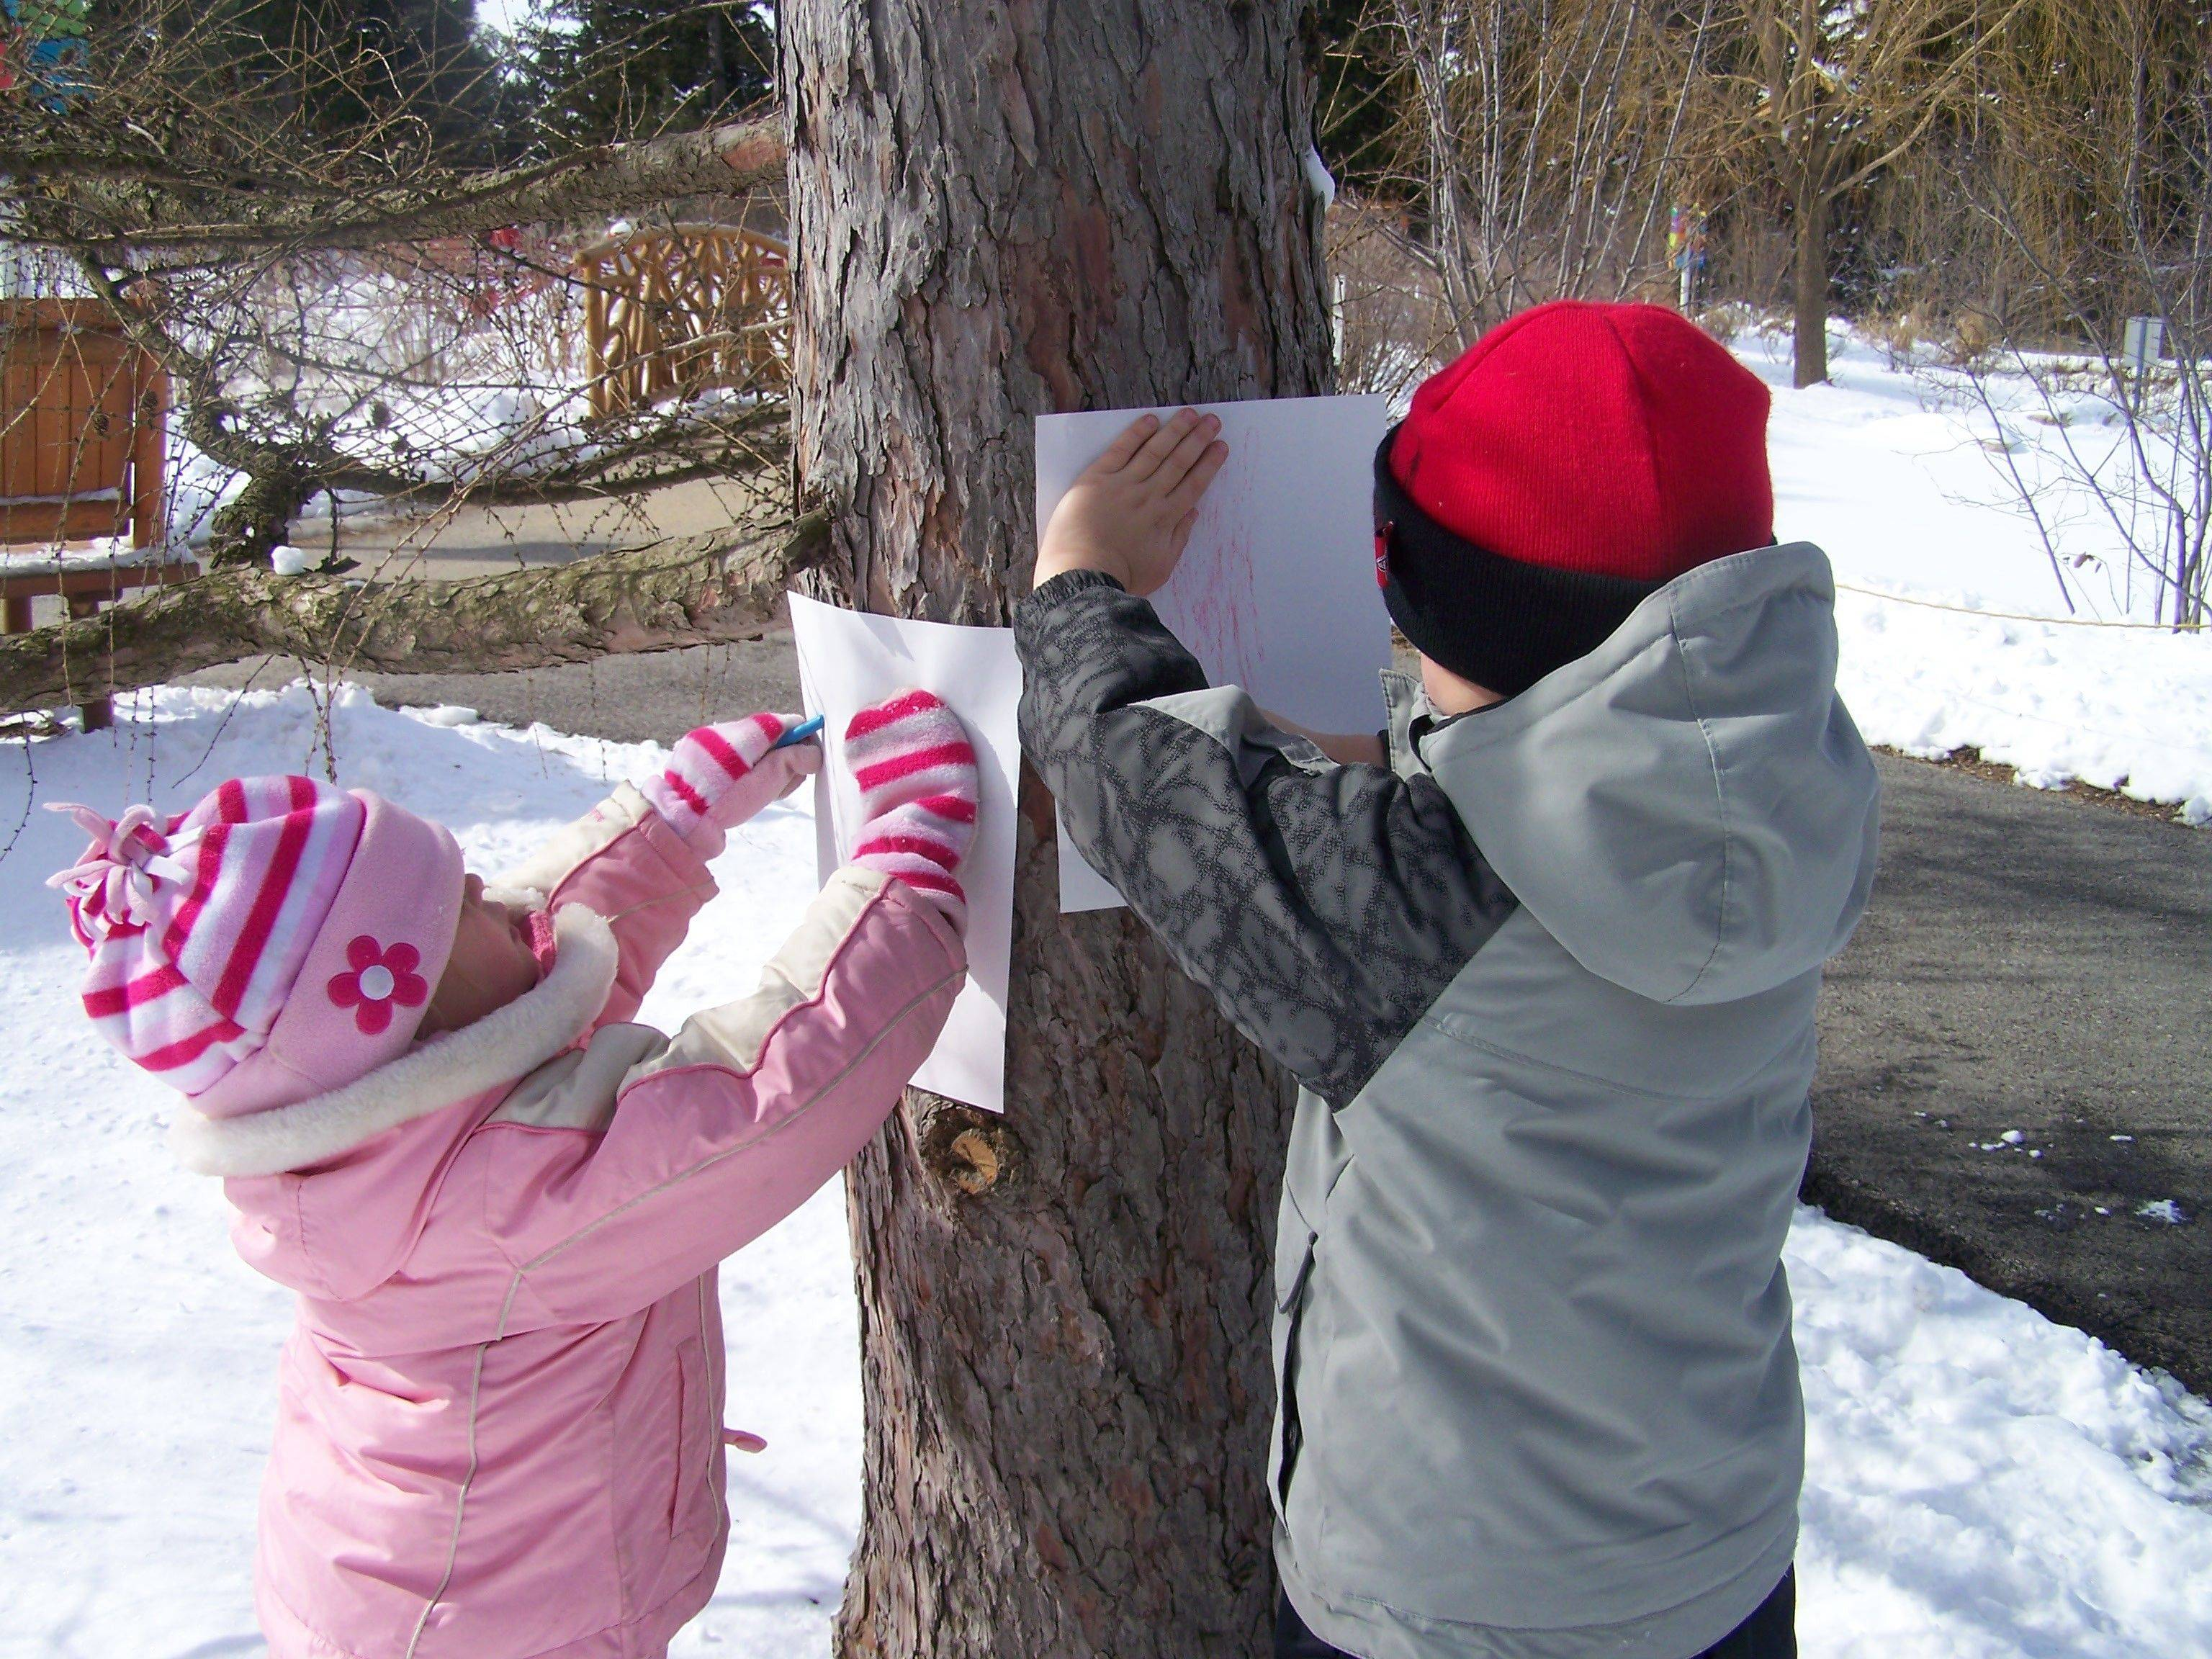 Youngsters make tree bark tracings during a winter nature hike at the Morton Arboretum's Children's Garden, which recently celebrated its fifth birthday.